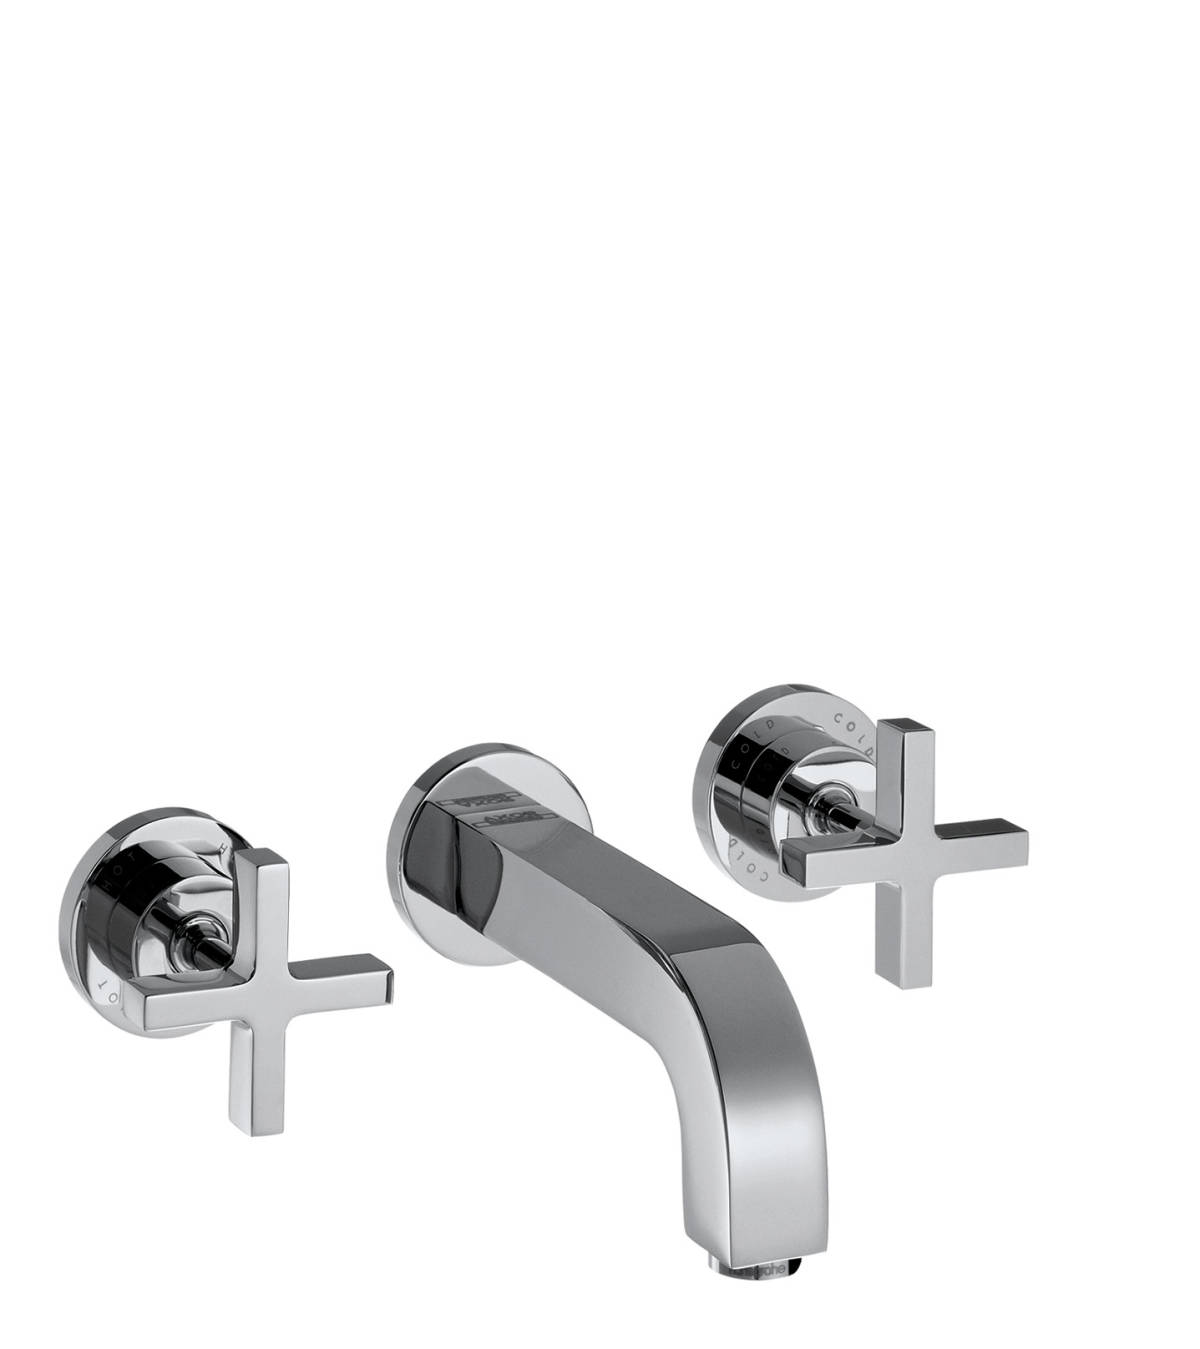 3-hole basin mixer for concealed installation wall-mounted with spout 162 mm, cross handles and escutcheons, Chrome, 39313000